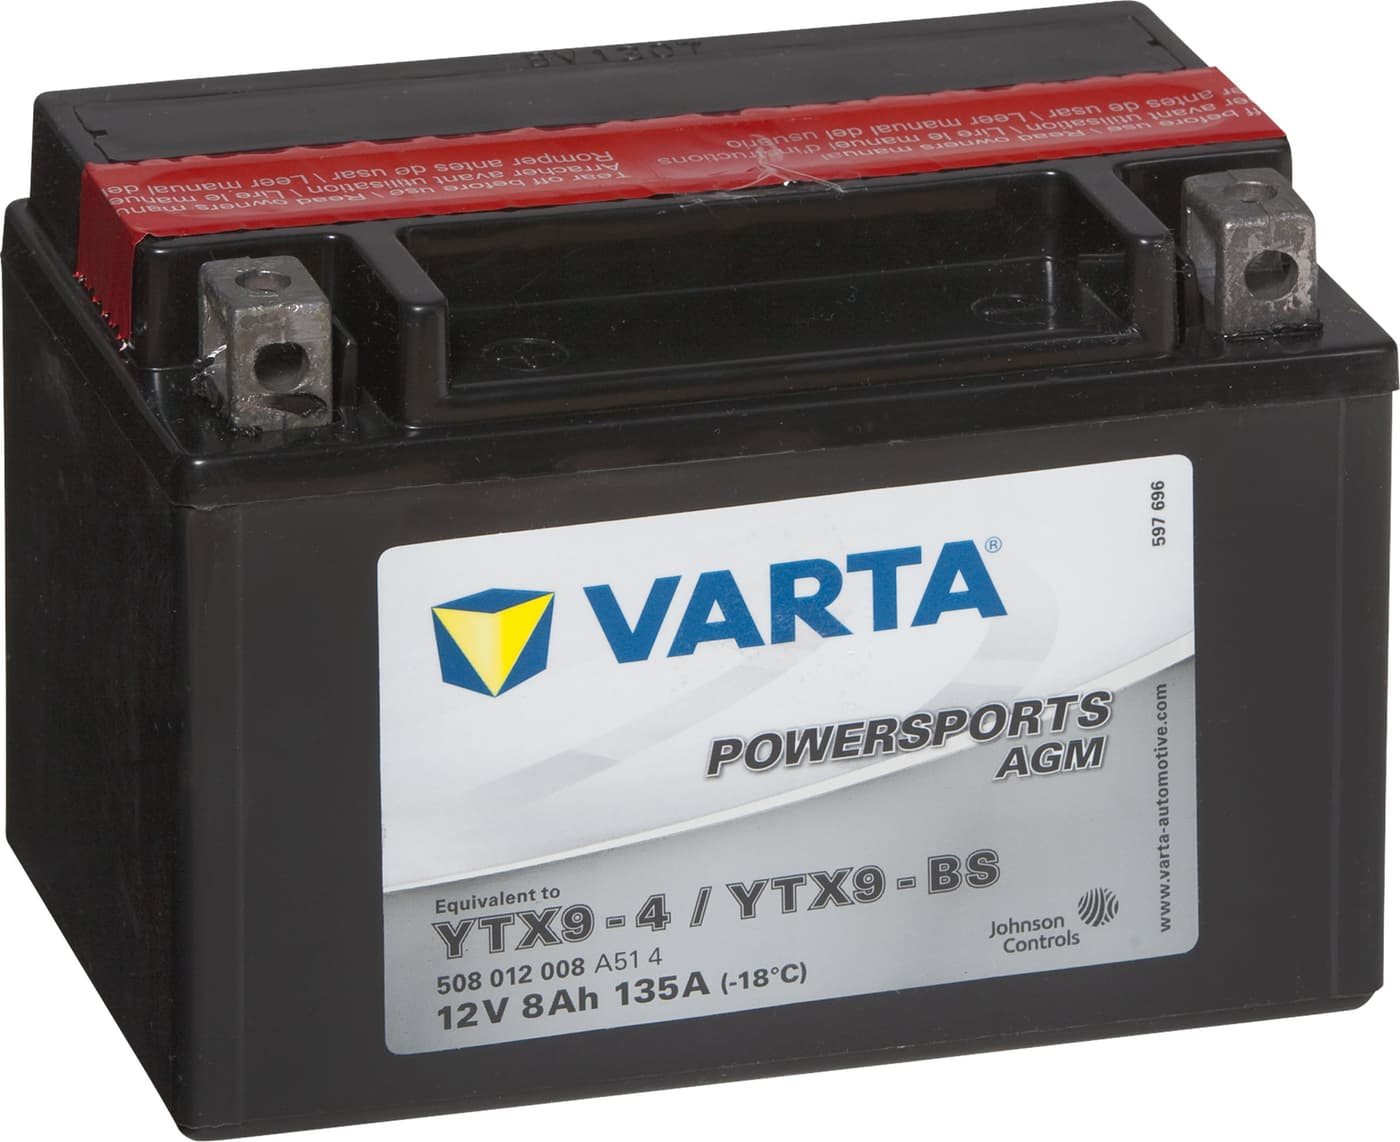 varta batterie moto ytx9 bs 12v 8ah 80a migros. Black Bedroom Furniture Sets. Home Design Ideas